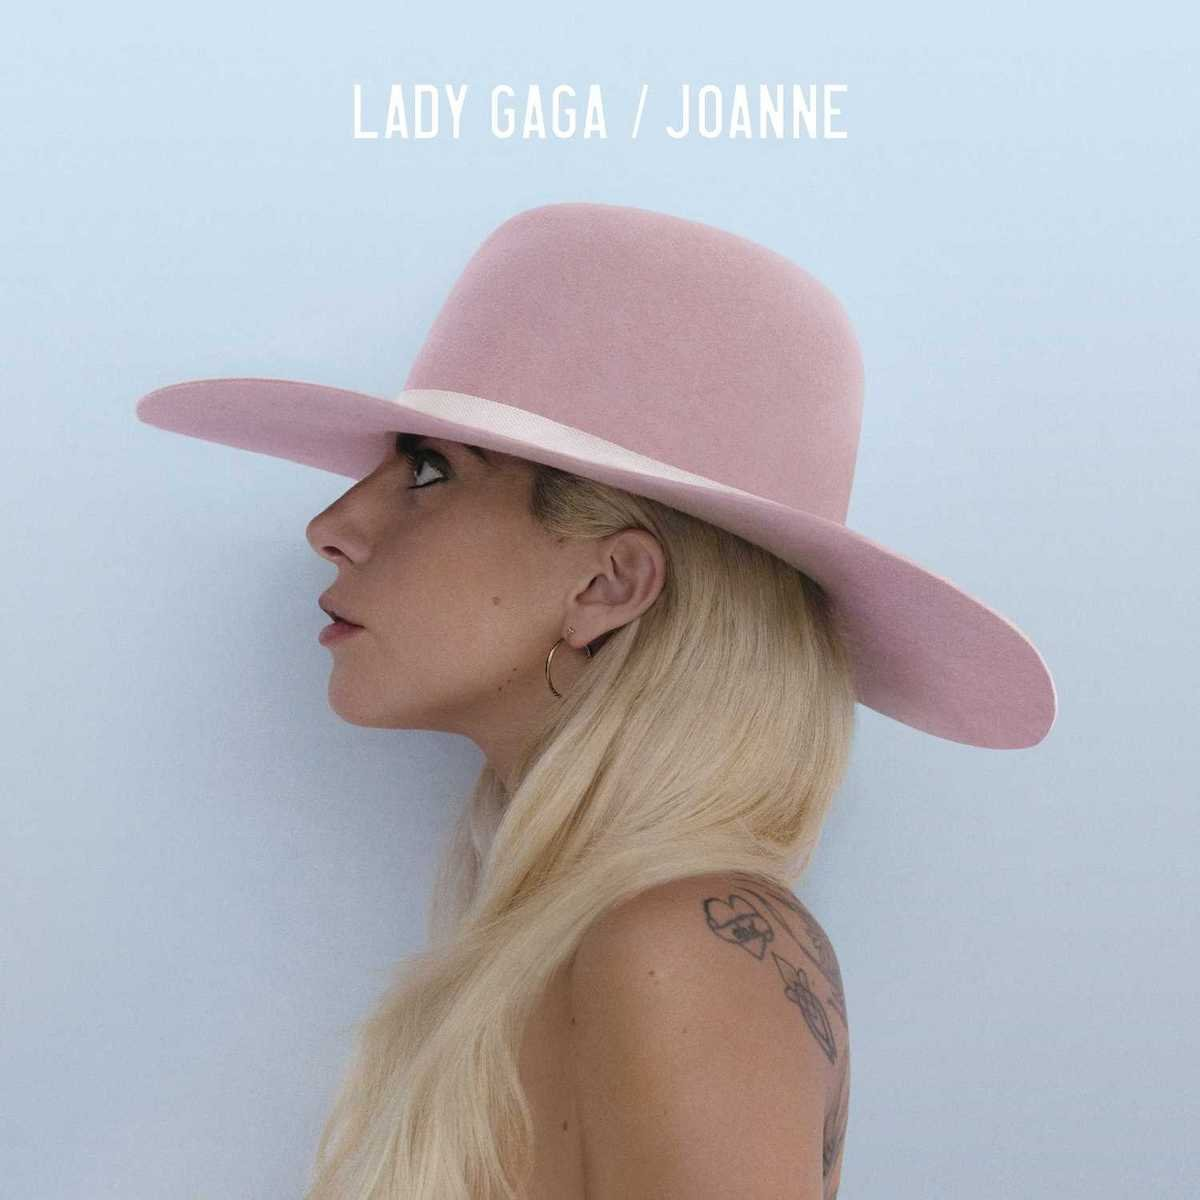 Joanne [Deluxe Edition] by Interscope (USA)